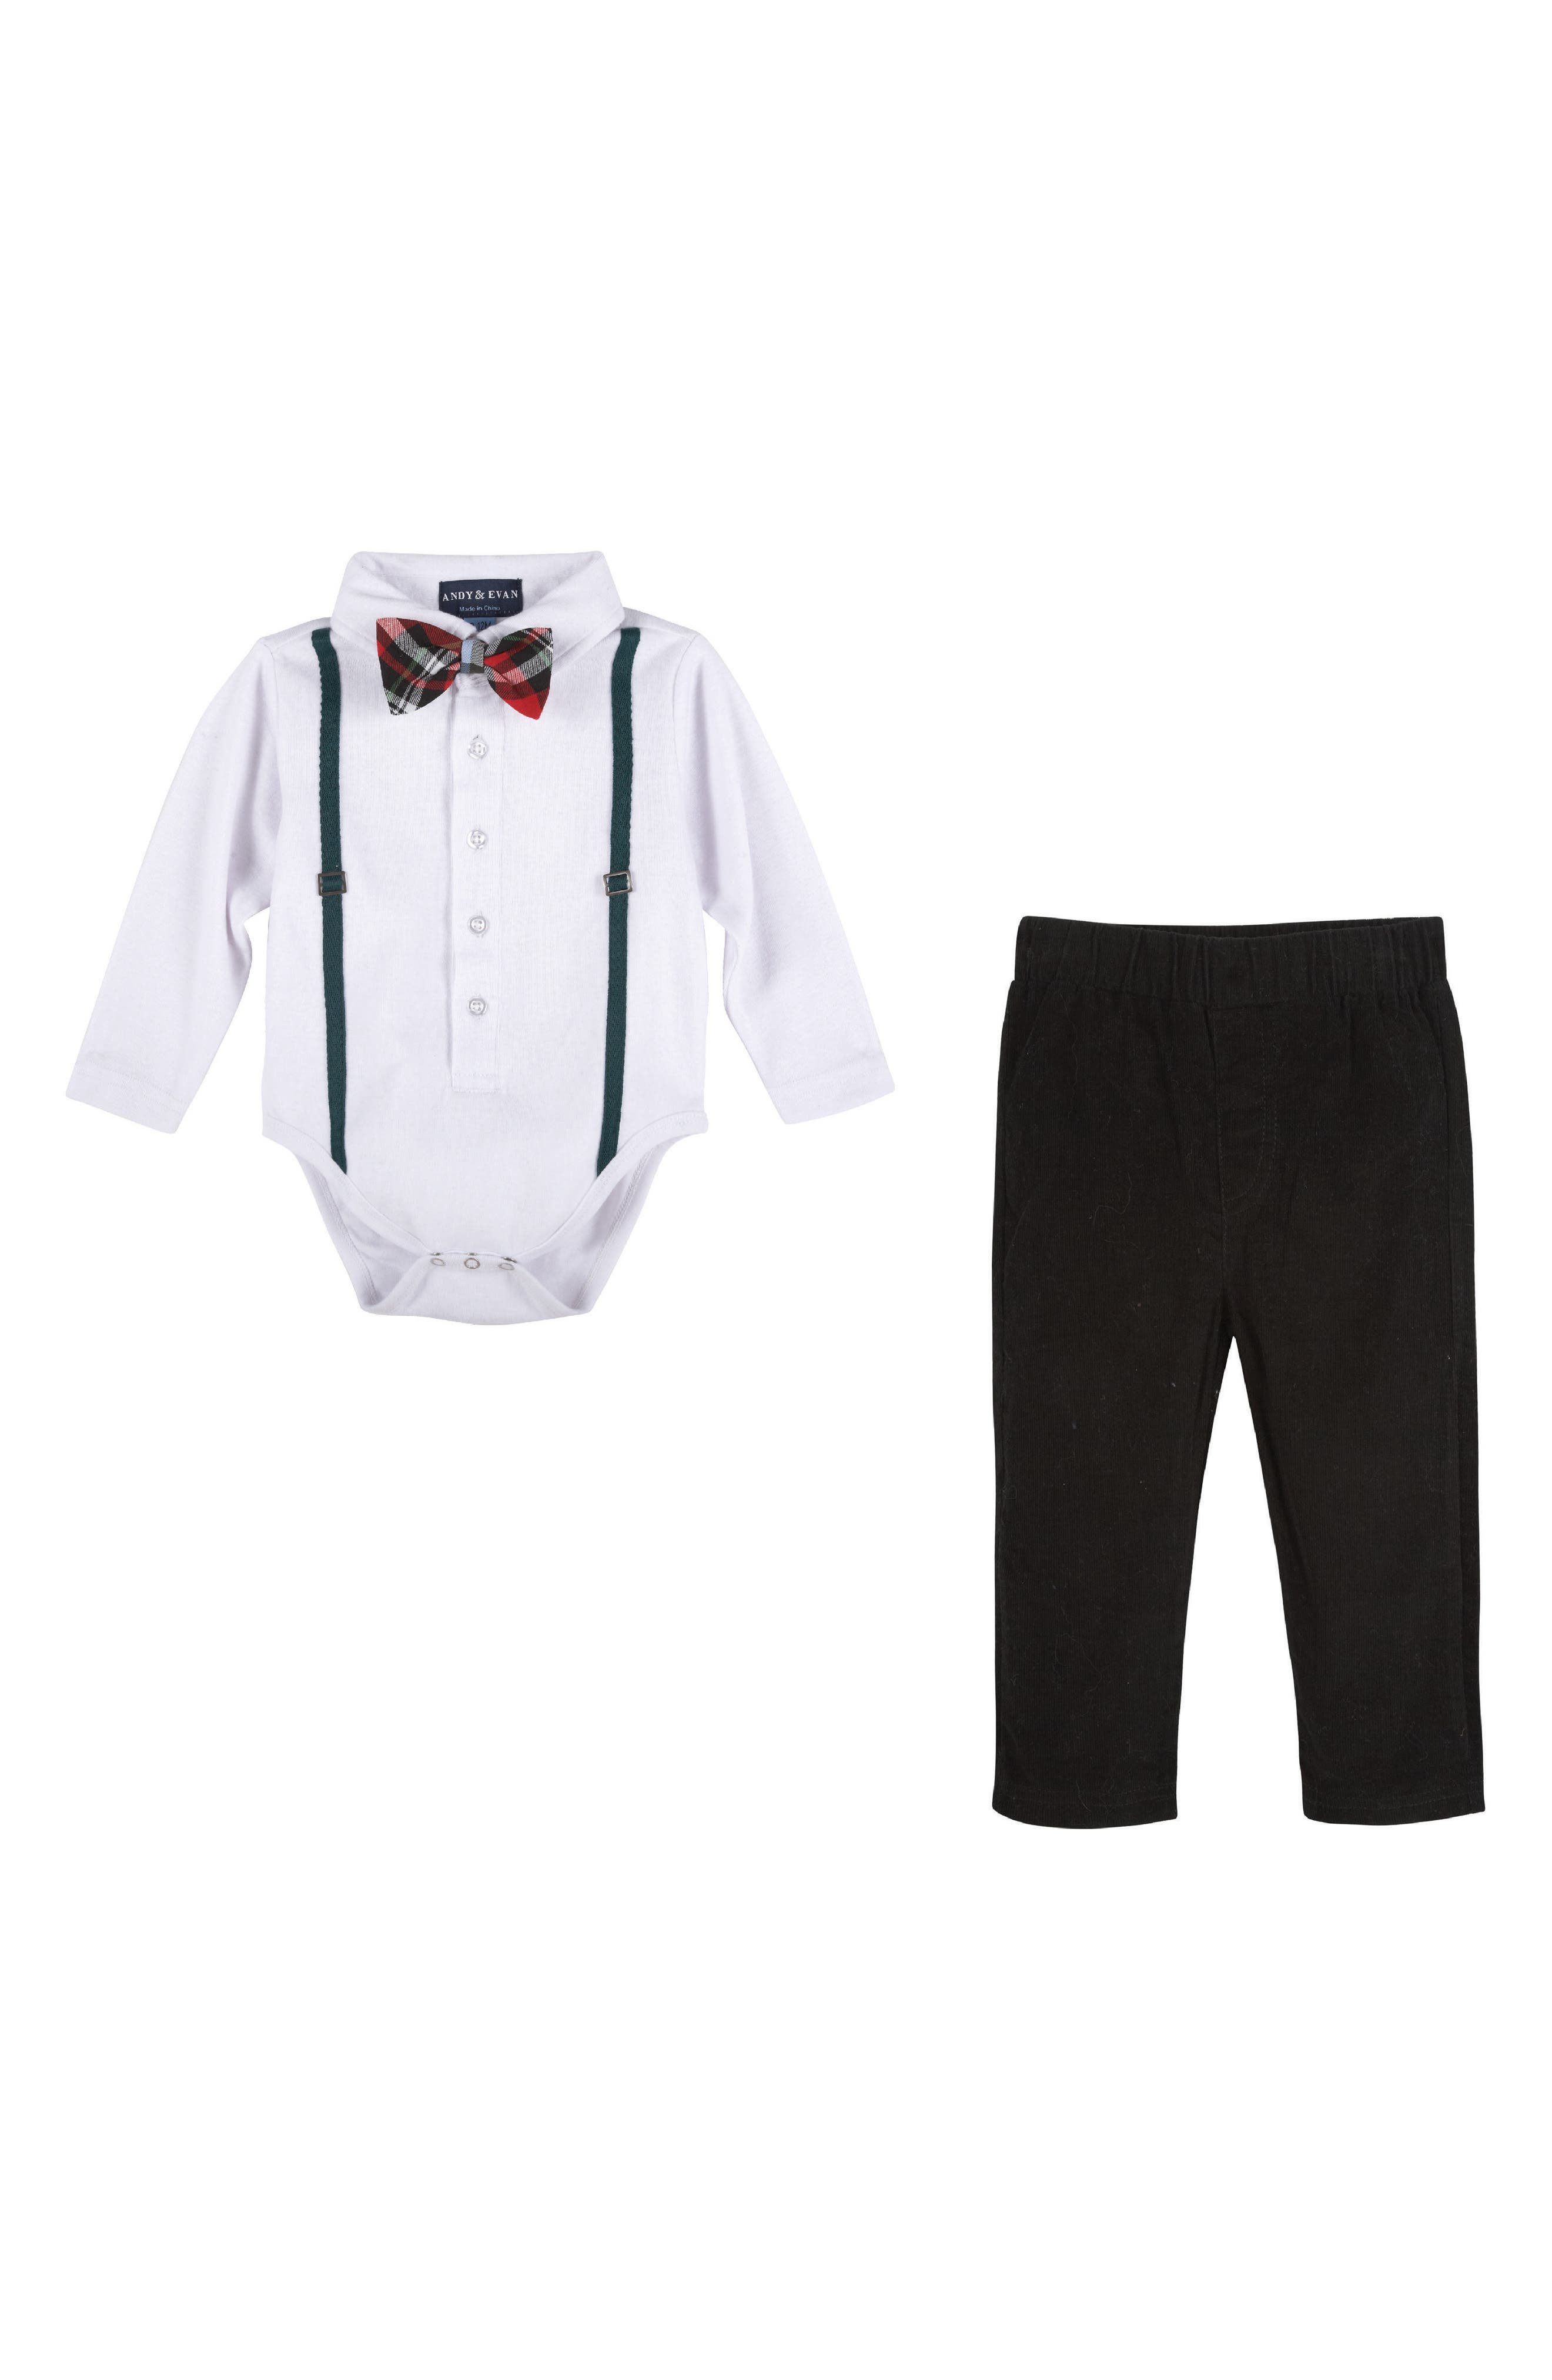 Andy & Evan Bodysuit, Bow Tie & Pants Set (Baby Boy)